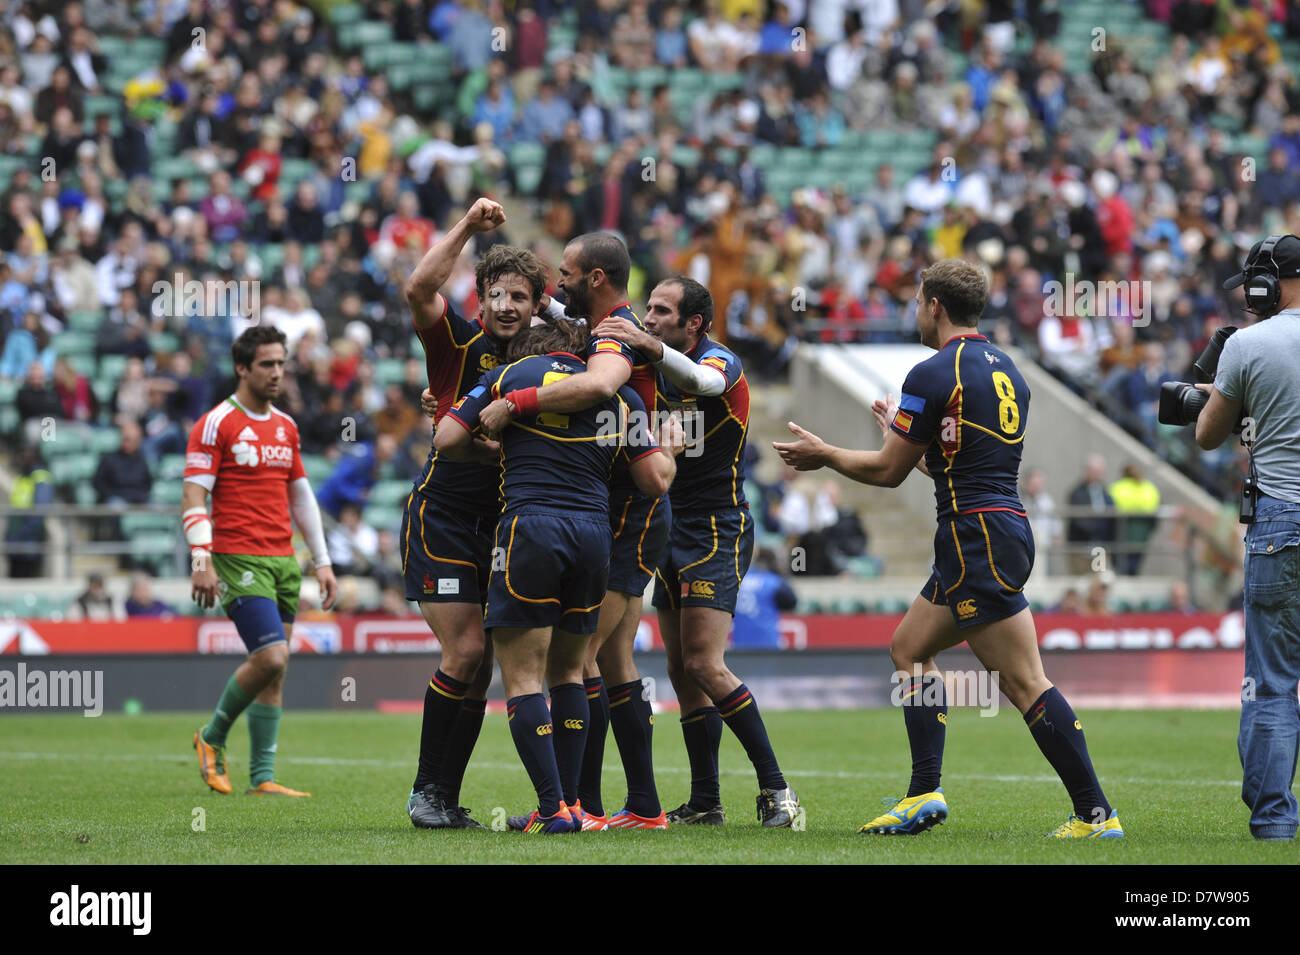 Members of the Spanish Rugby Sevens team celebrating their win over Portugal in the series qualifying final at Twickenham. - Stock Image